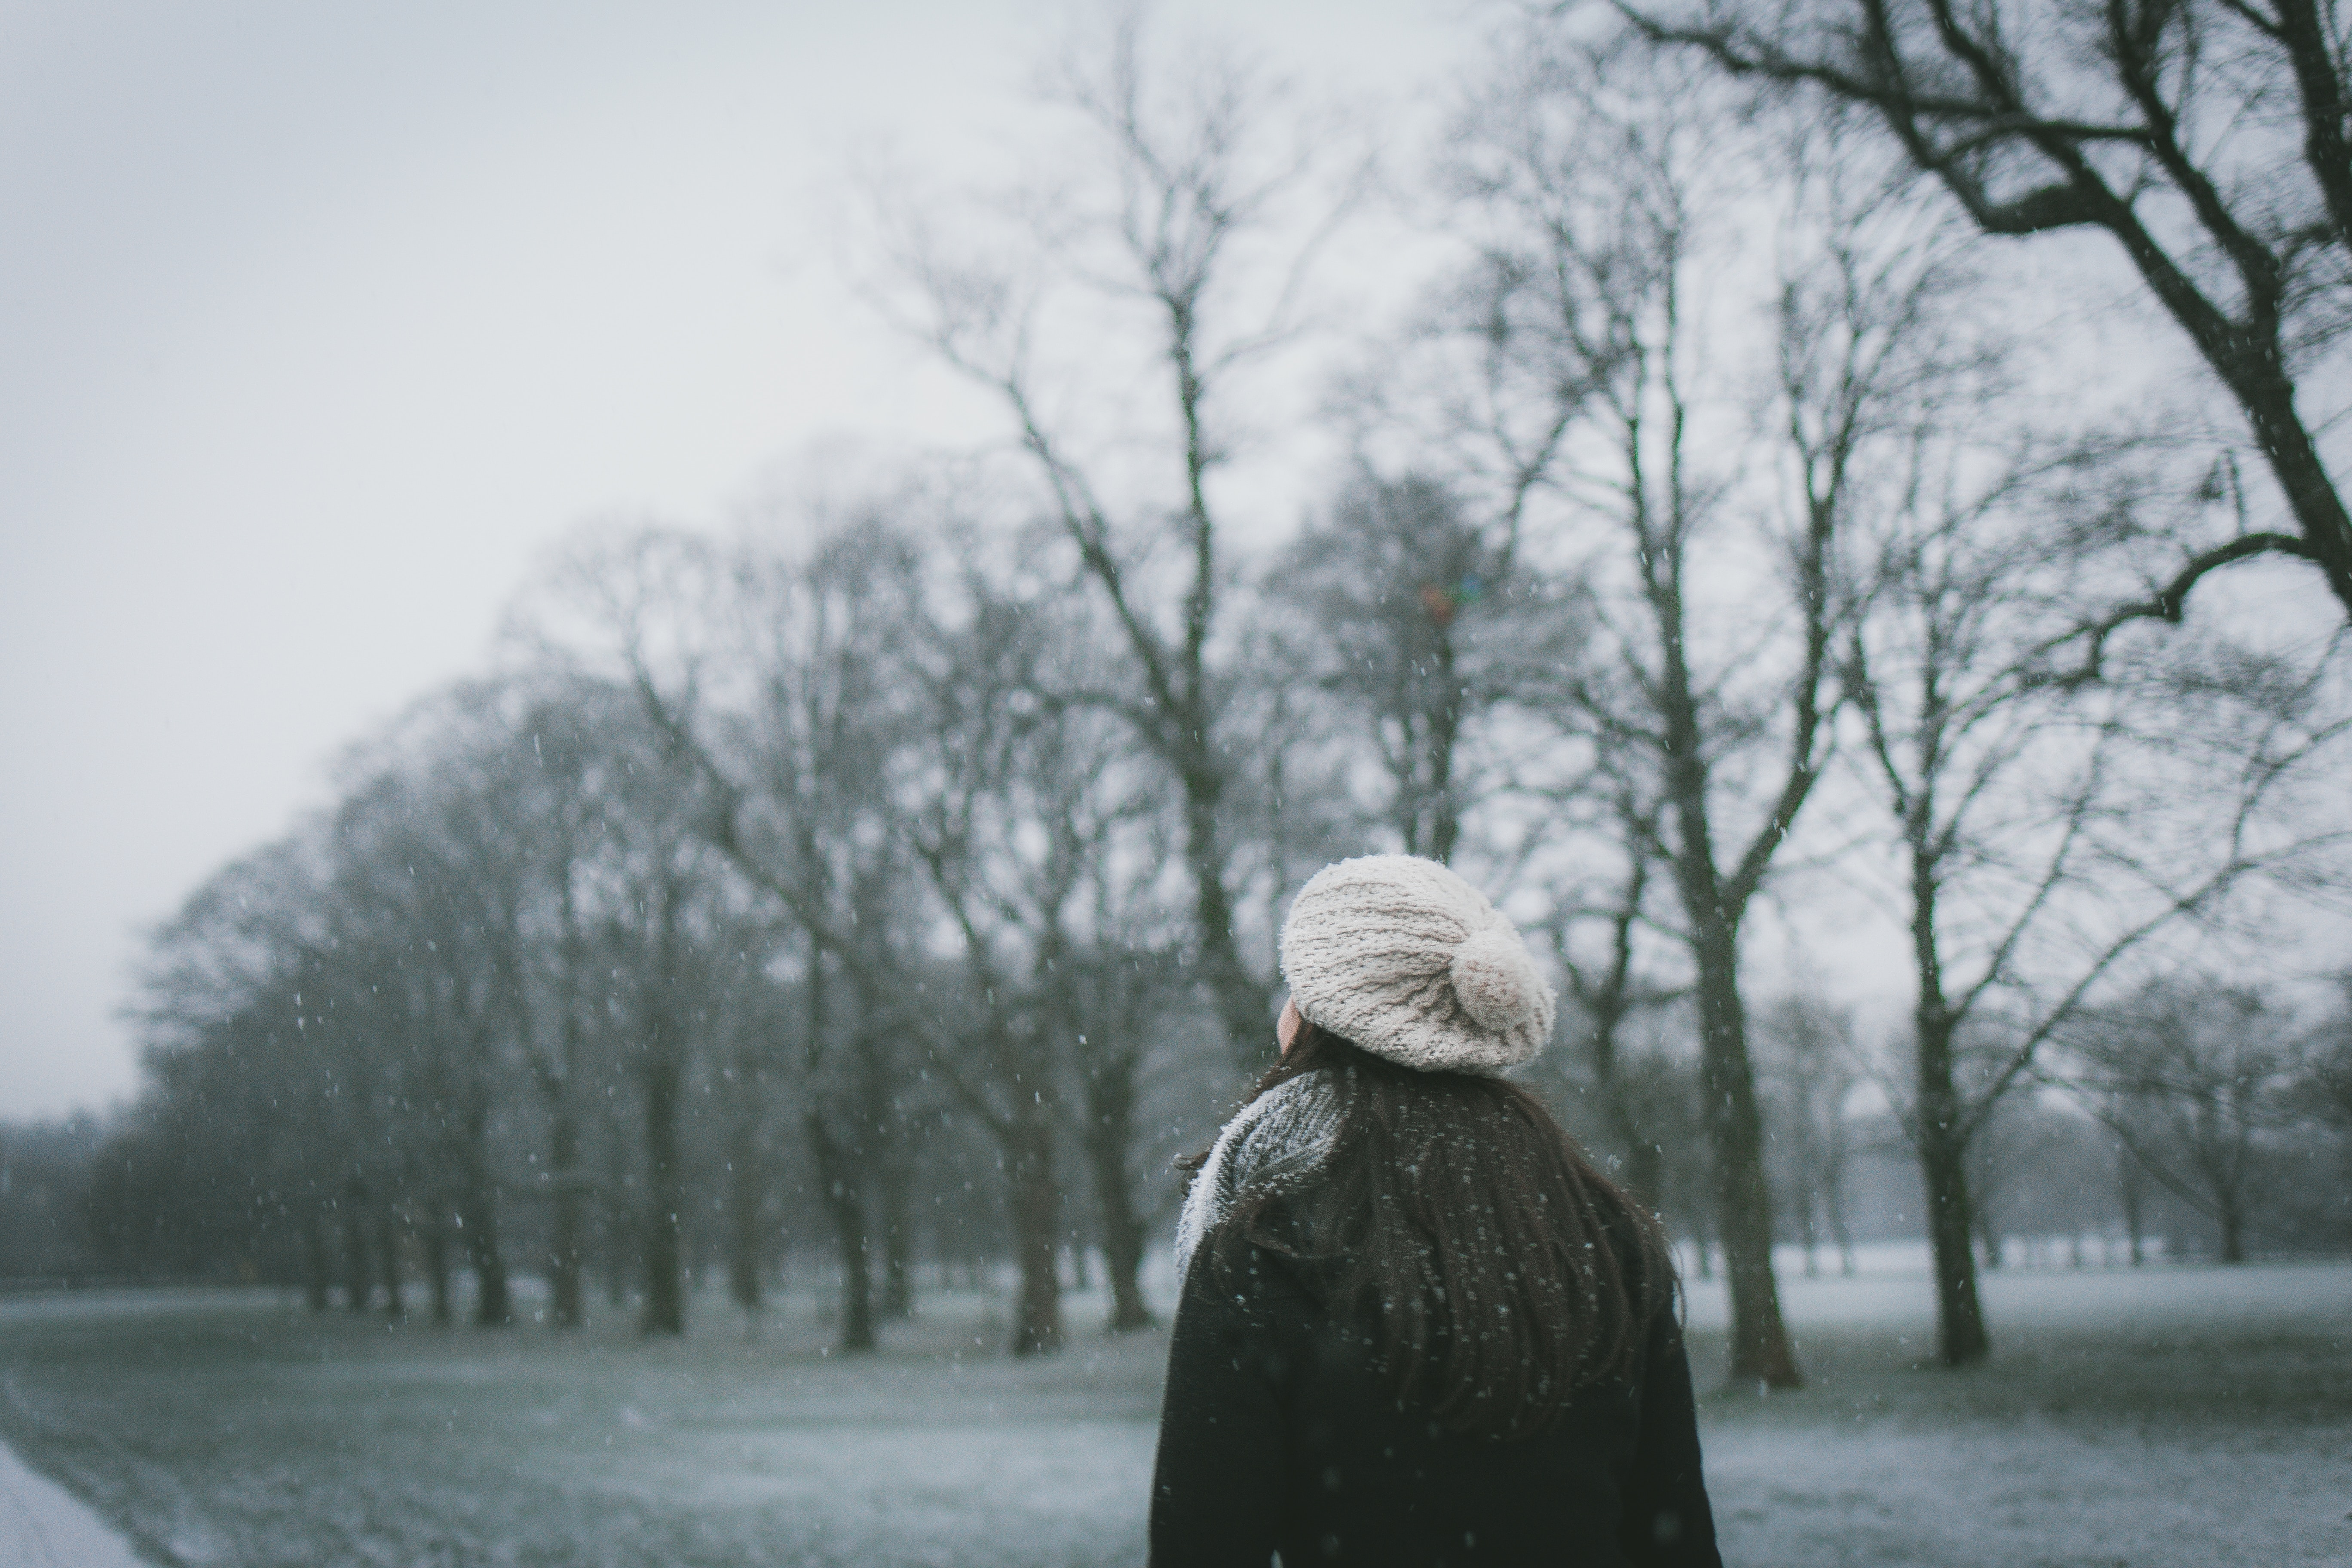 Young woman wearing black winter coat and white woolen hat looking up thoughtfully at gray sky with bare trees in background and snow falling.